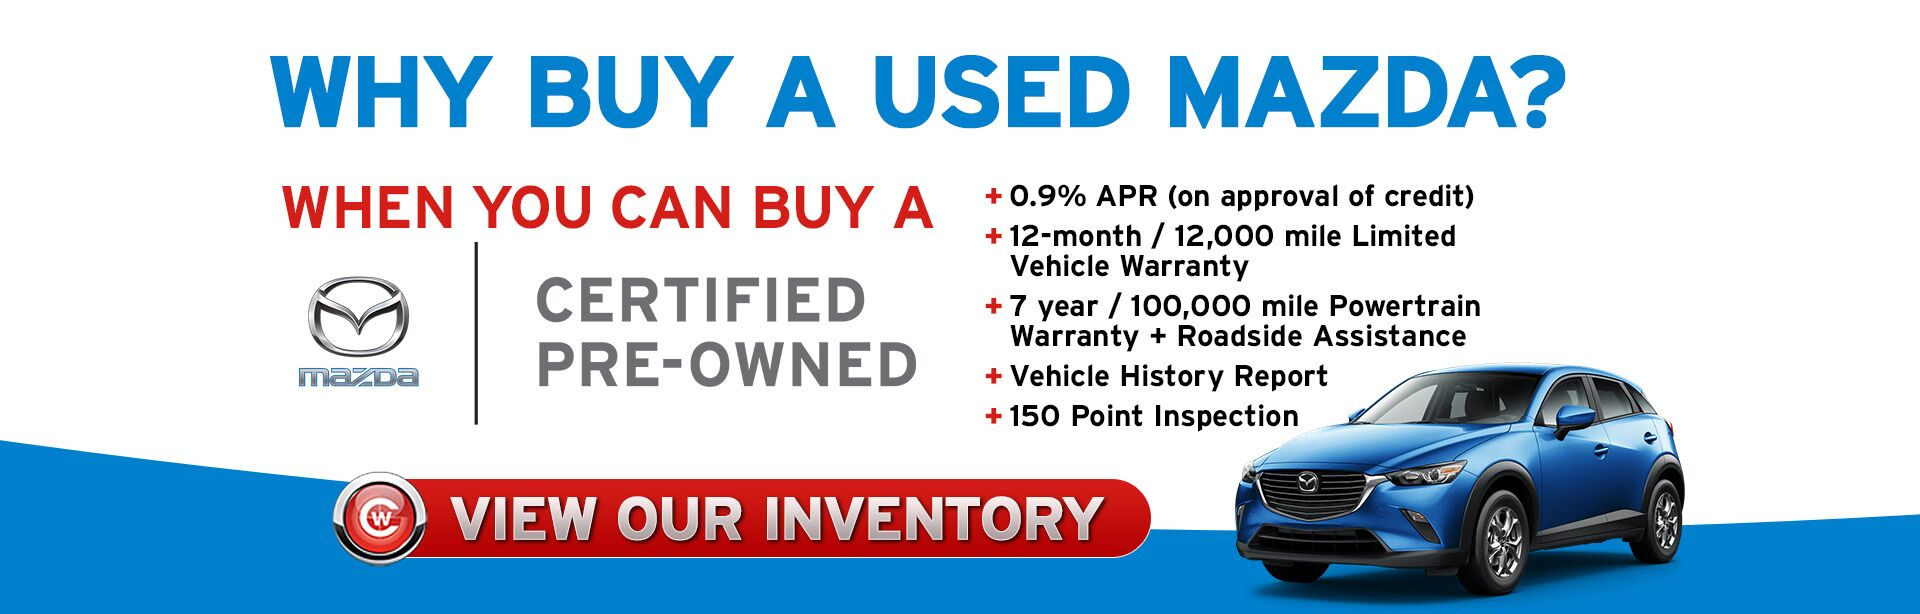 Why buy used mazda